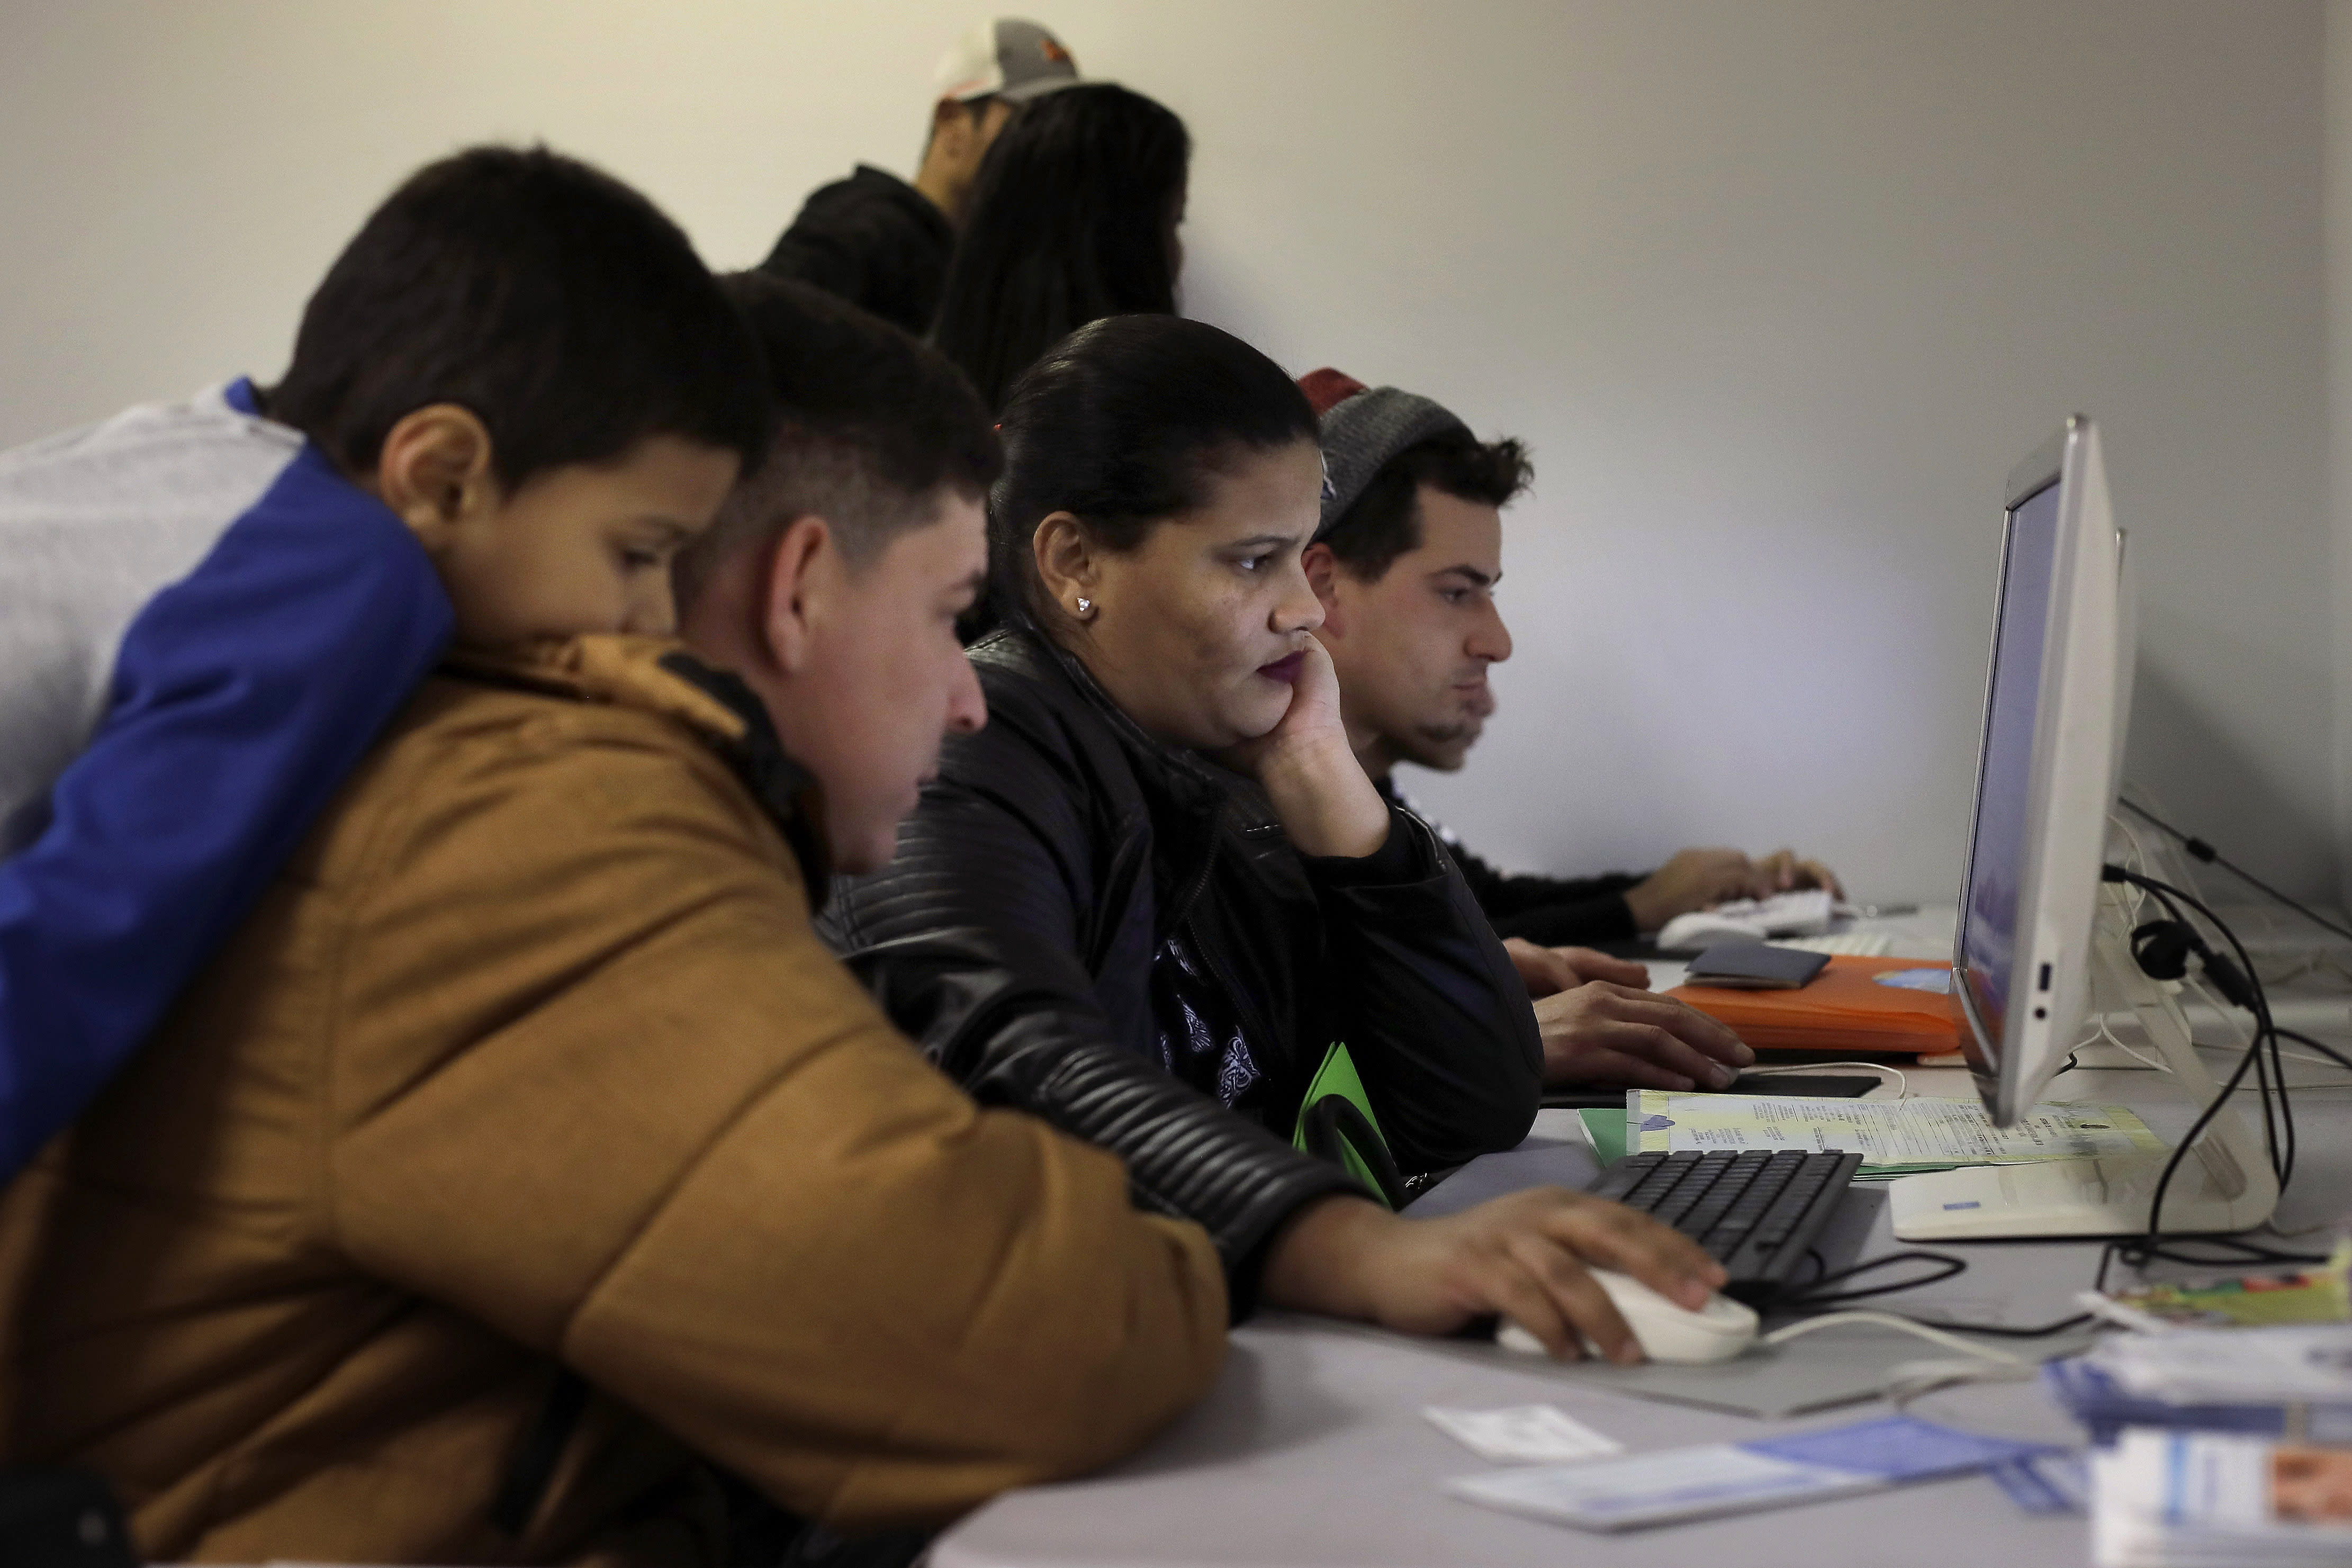 In this Wednesday, Dec. 4, 2019 photo Helison Alvarenga, of Brazil, second from left, sits with his 6-year-old son, David, left, and 24-year-old wife, Amanda, center, as they use a computer monitor while pursuing replacement passports at the New England Community Center, in Stoughton, Mass. Alvarenga, a 26-year-old from the Brazilian state of Minas Gerais, arrived in Massachusetts about four months ago after crossing the Mexican border at Juarez with his family. The three were at the community center Dec. 4, to apply for new Brazilian passports, which Alvarenga says were seized by border officials. (AP Photo/Steven Senne)